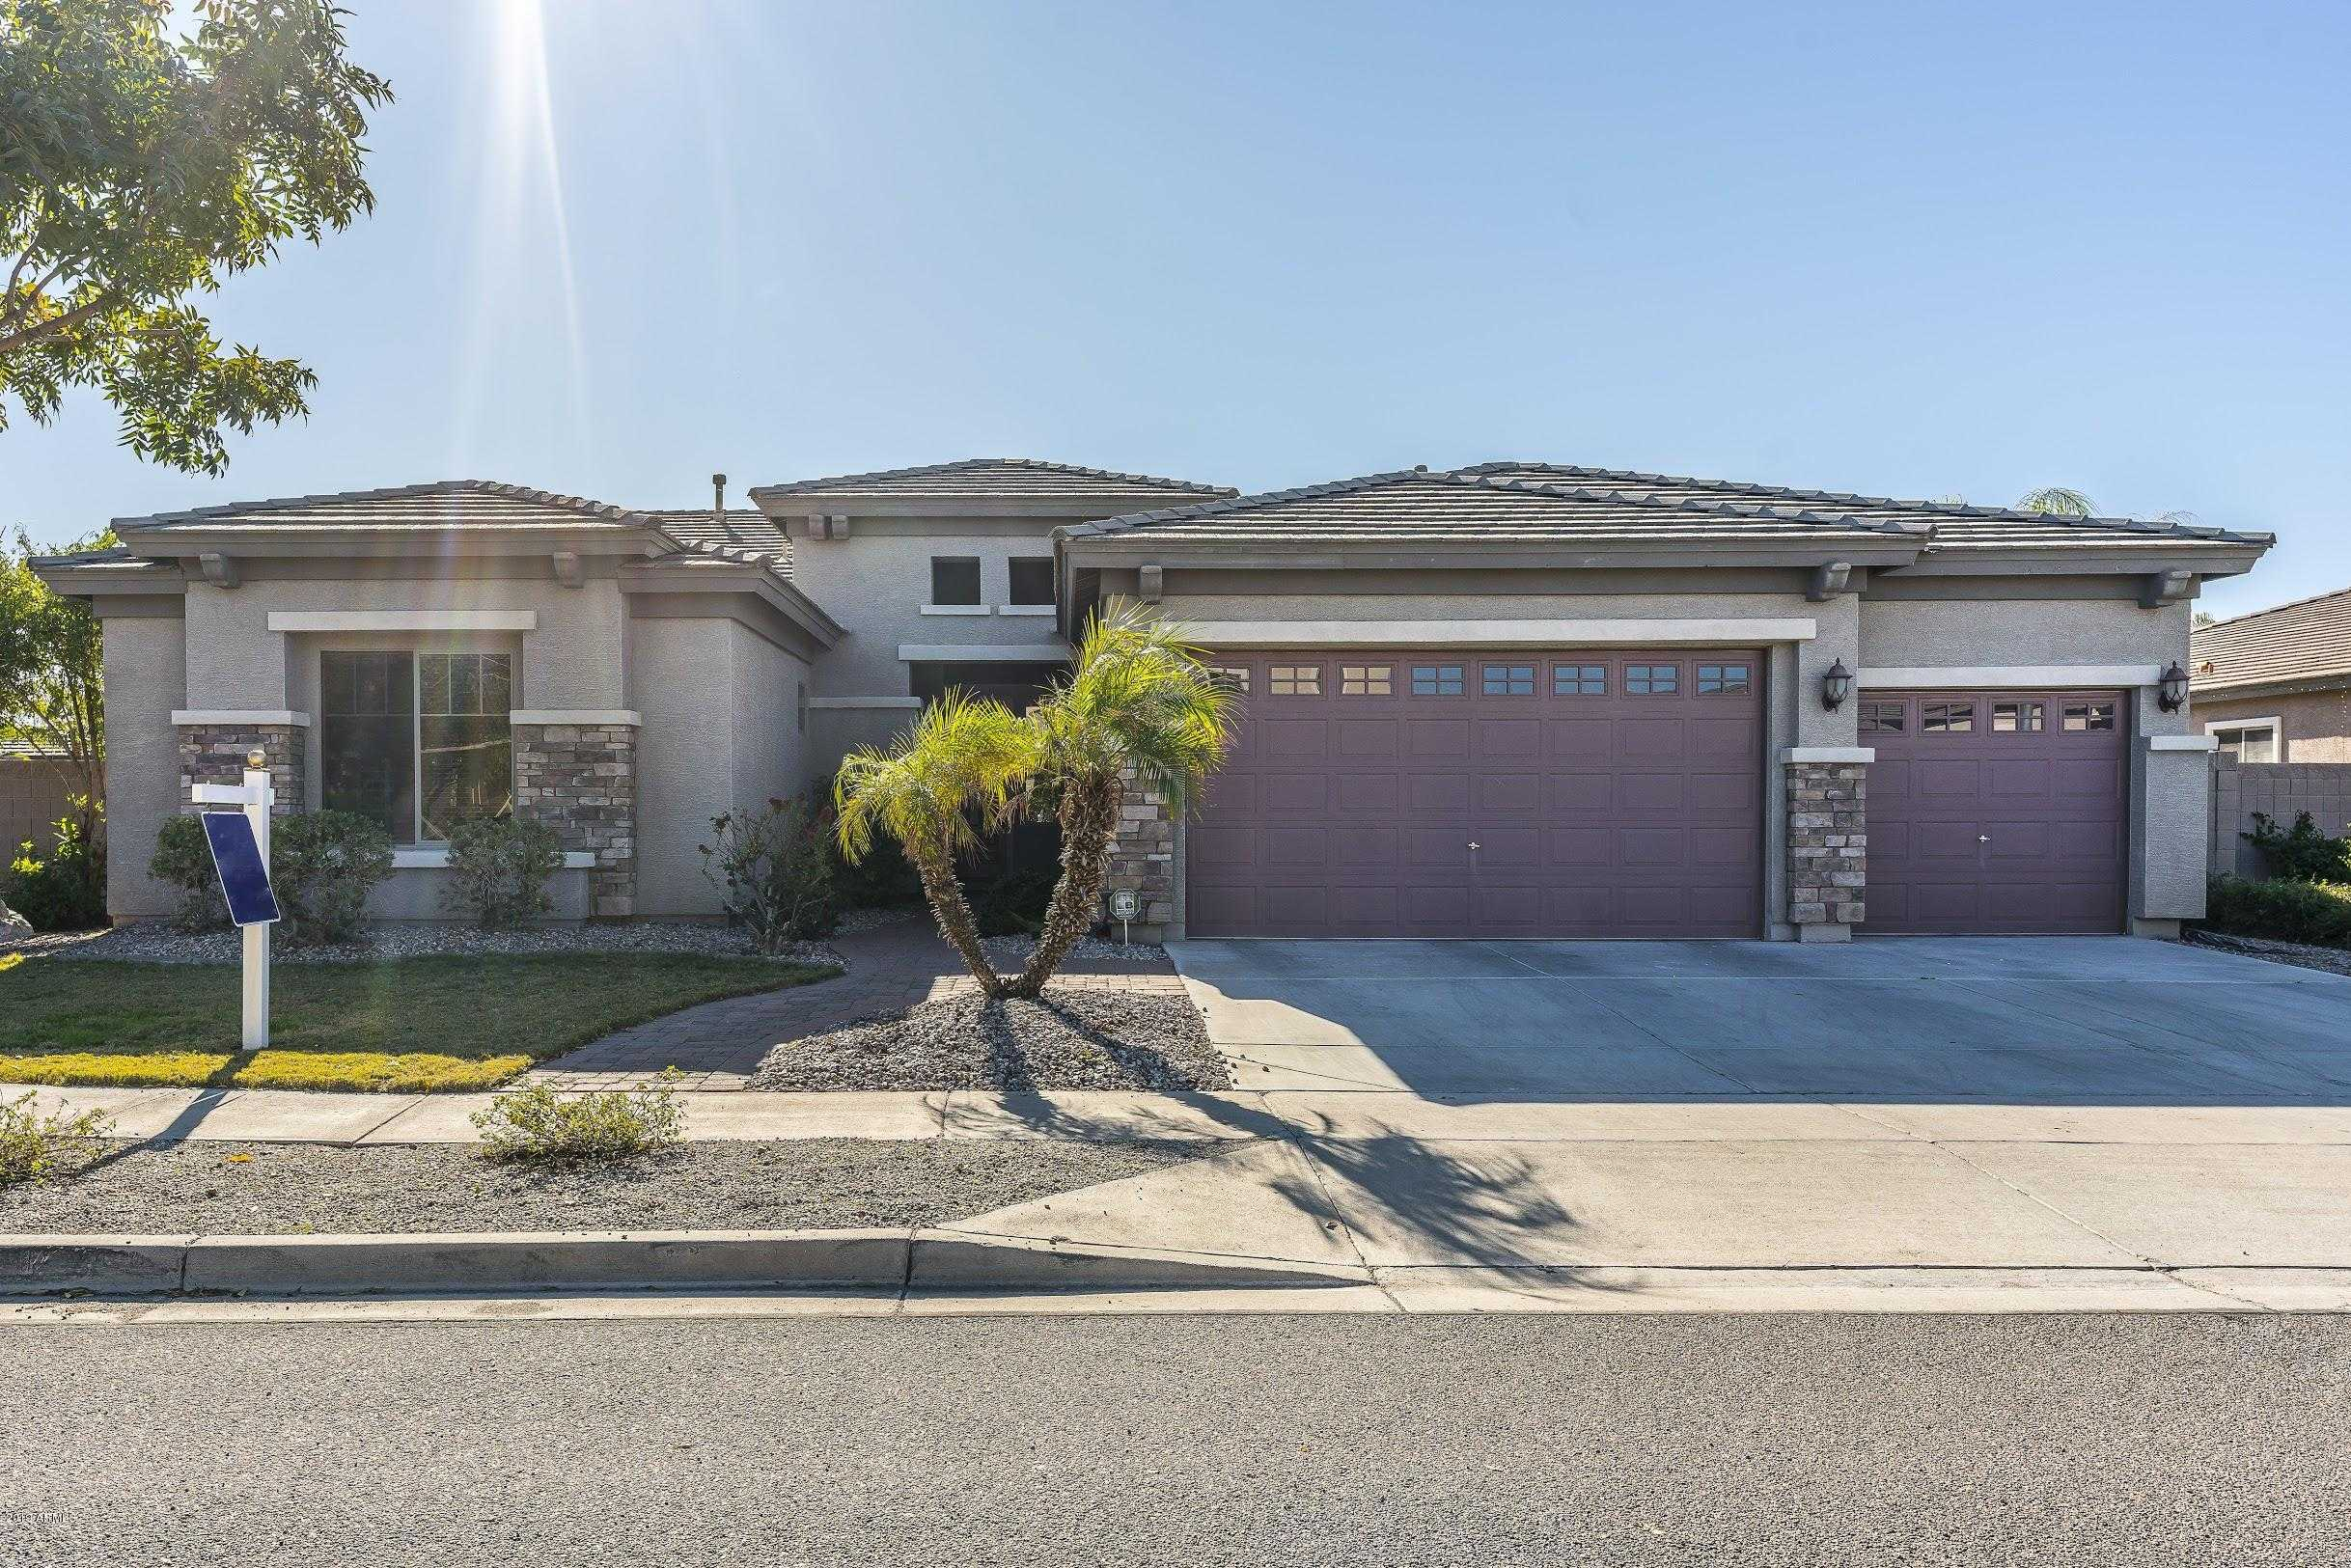 $459,999 - 4Br/3Ba - Home for Sale in Rovey Farm Estates South, Glendale